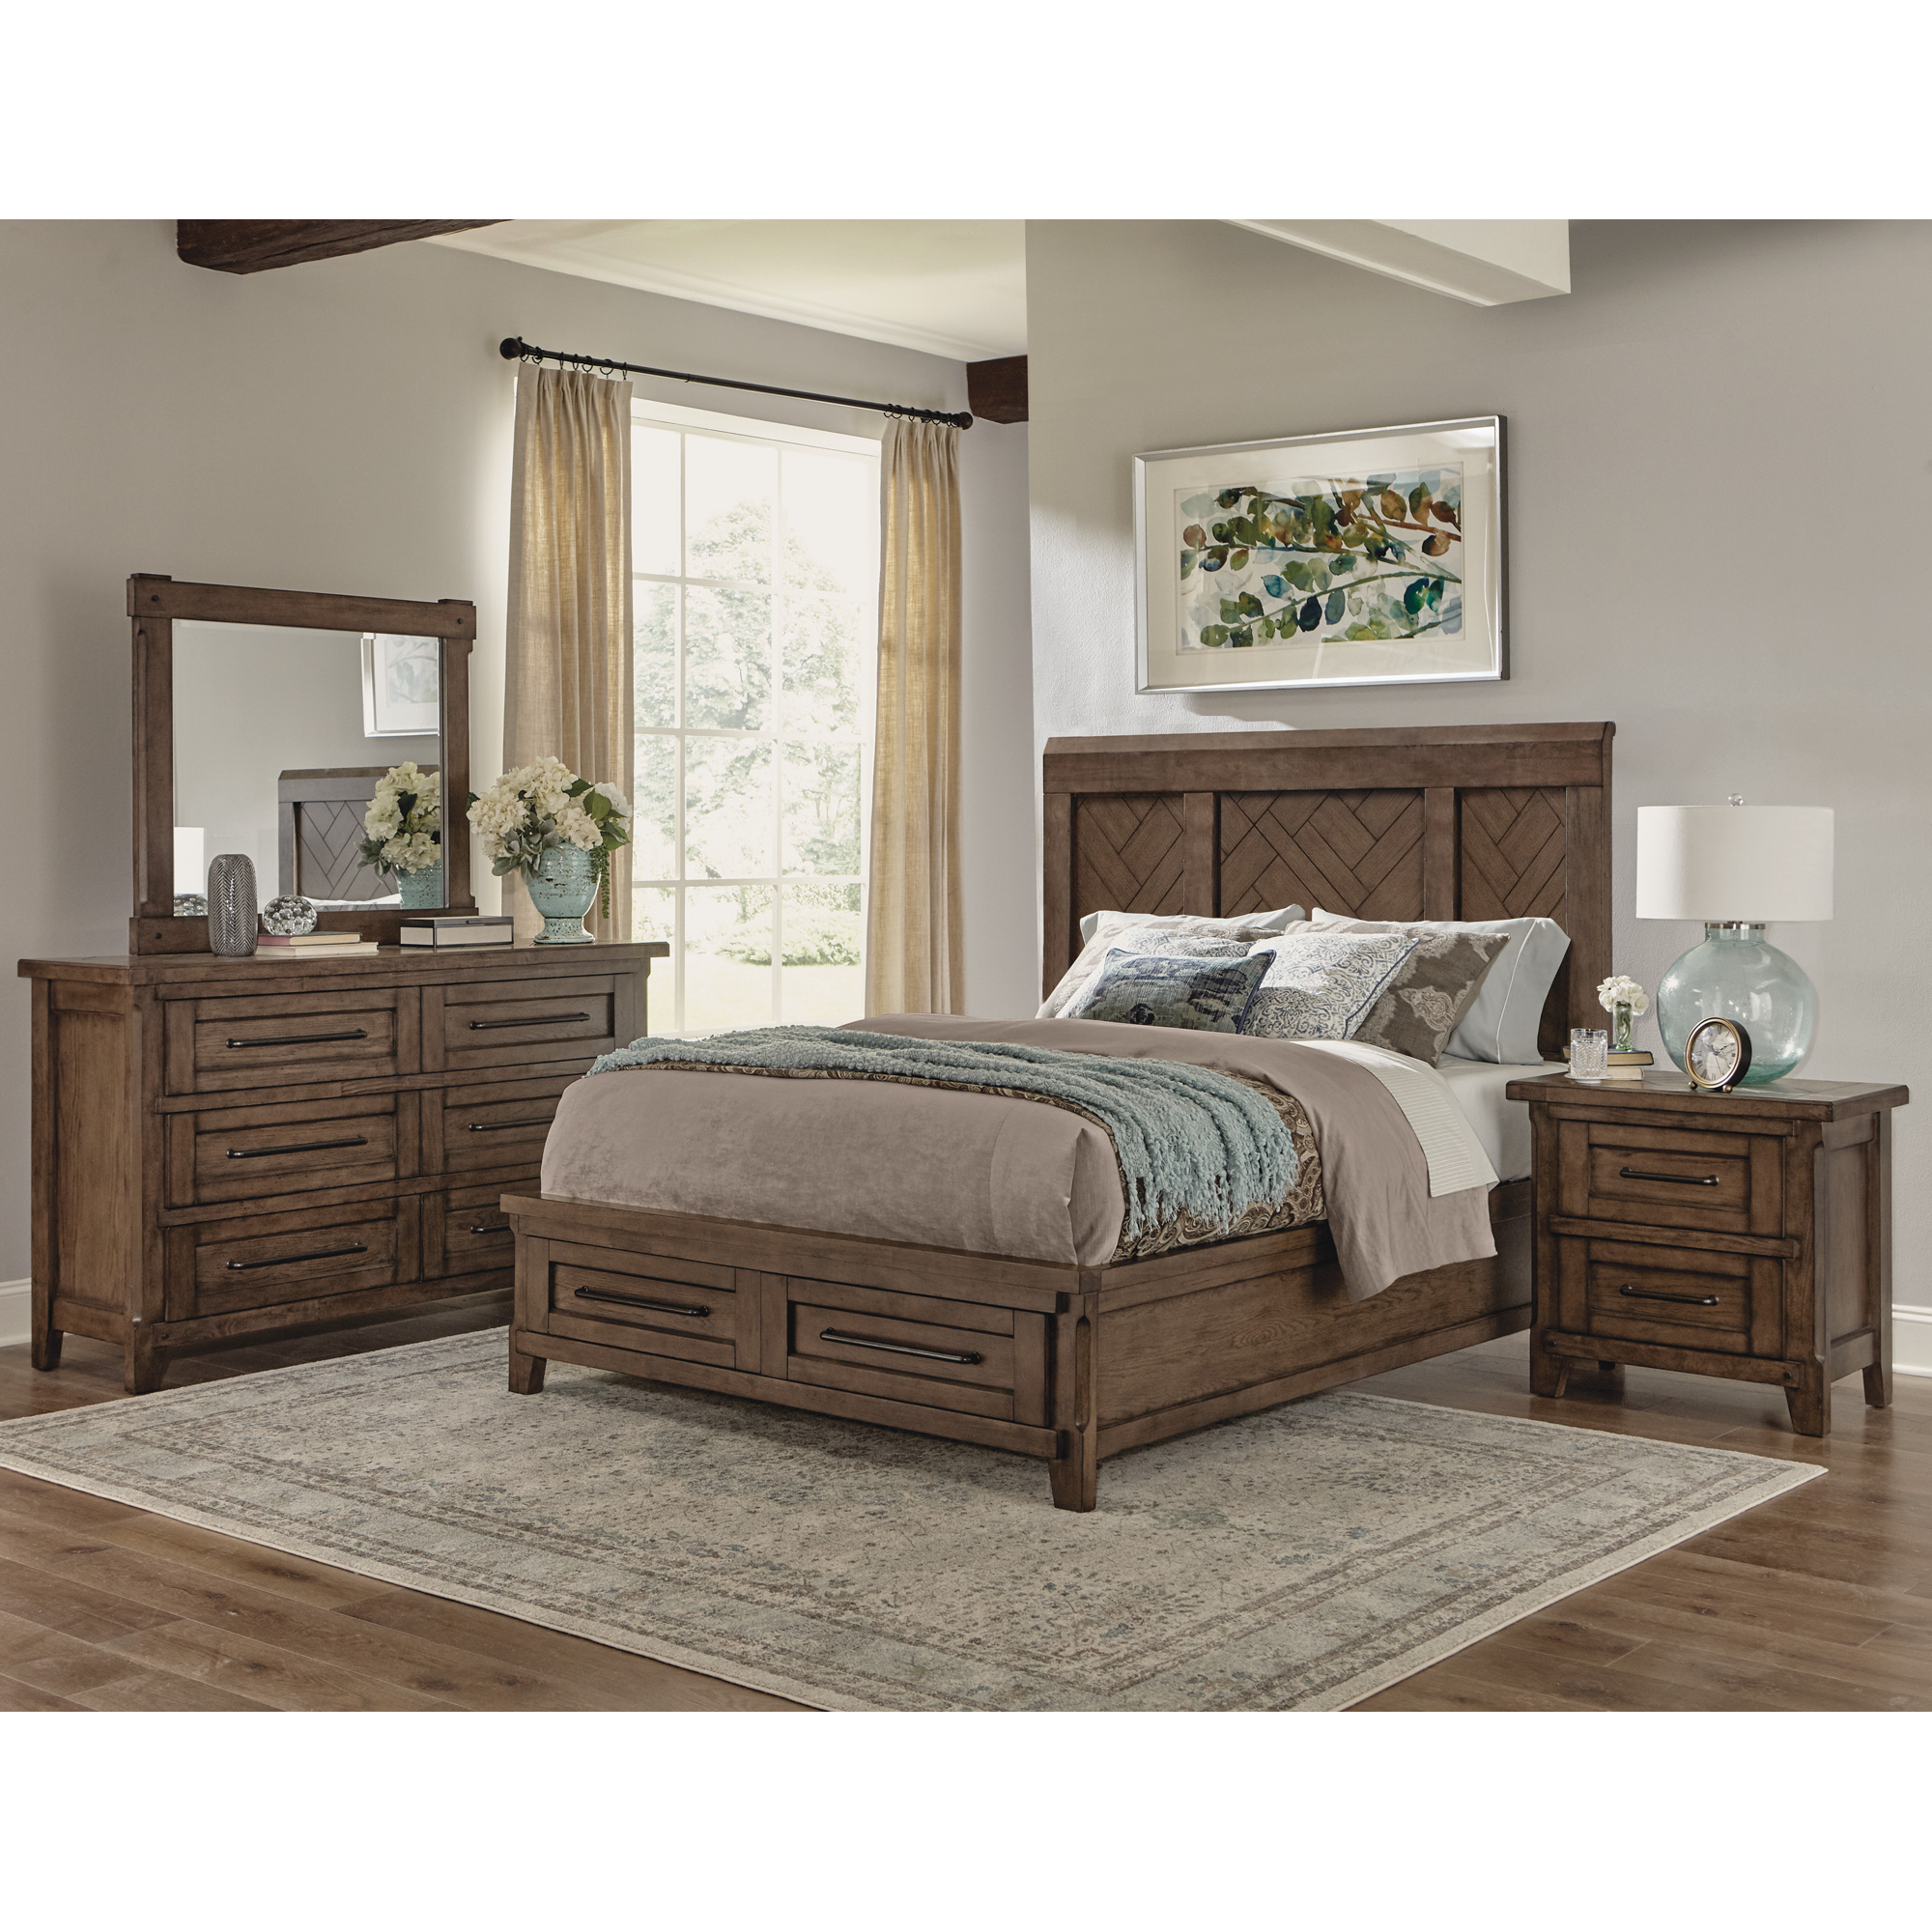 Davis Direct | Patches Gray Brown King Panel Storage 4 Piece Room Group Bedroom Set